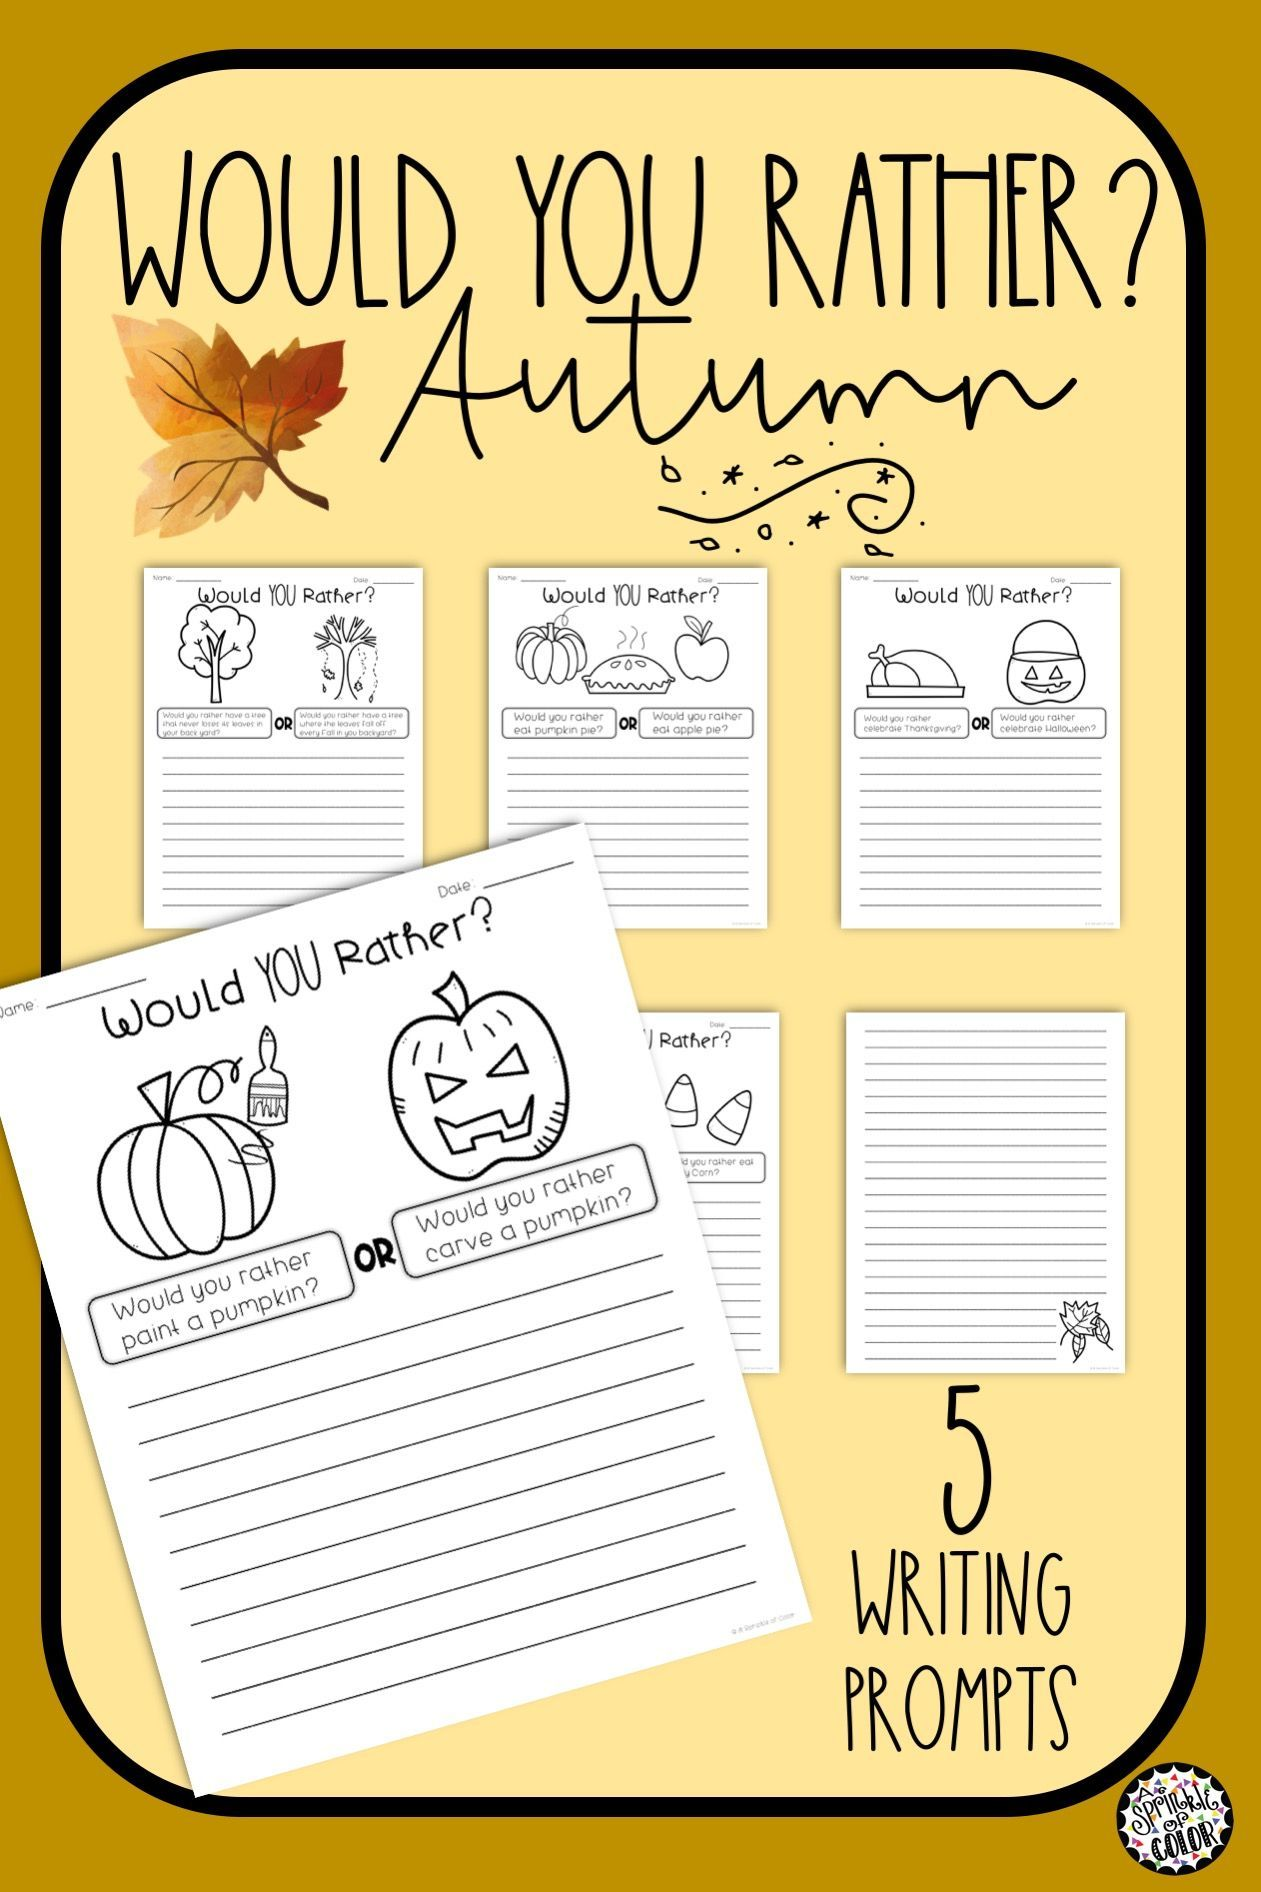 5 Would You Rather Writing Prompts For Fall Autumn Fun Students Will Write A Paragra Narrative Writing Language Arts Elementary Teachers Pay Teachers Seller [ 1892 x 1261 Pixel ]